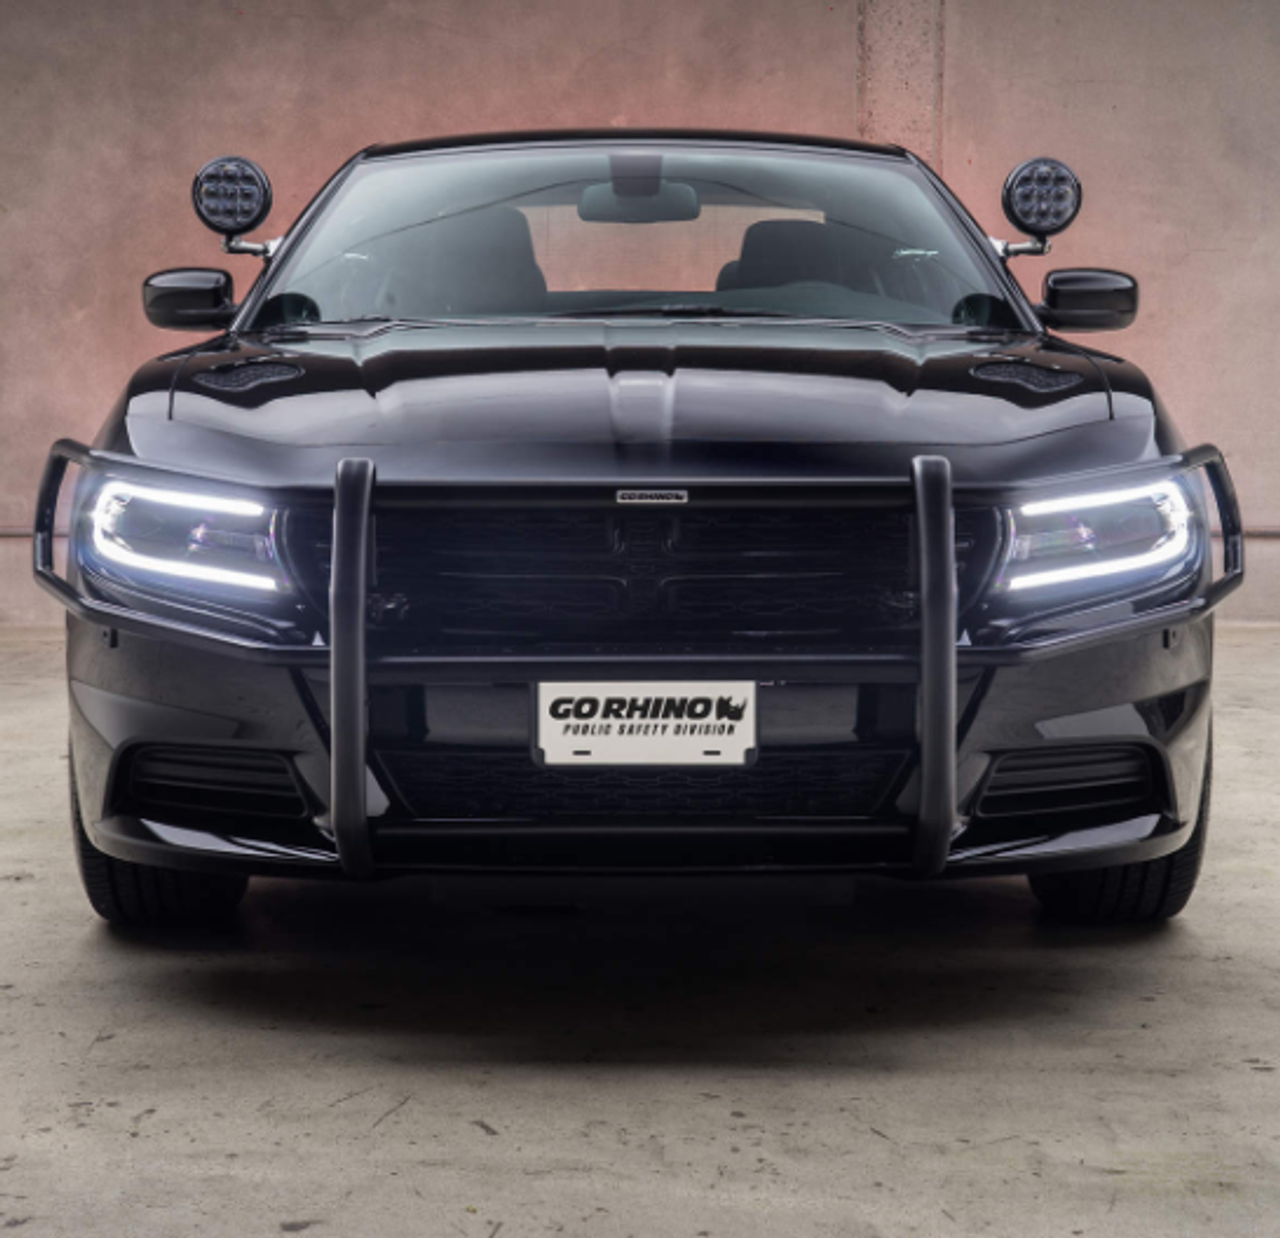 Go Rhino Dodge Charger Push Bumper With Wrap-around 2006-2019